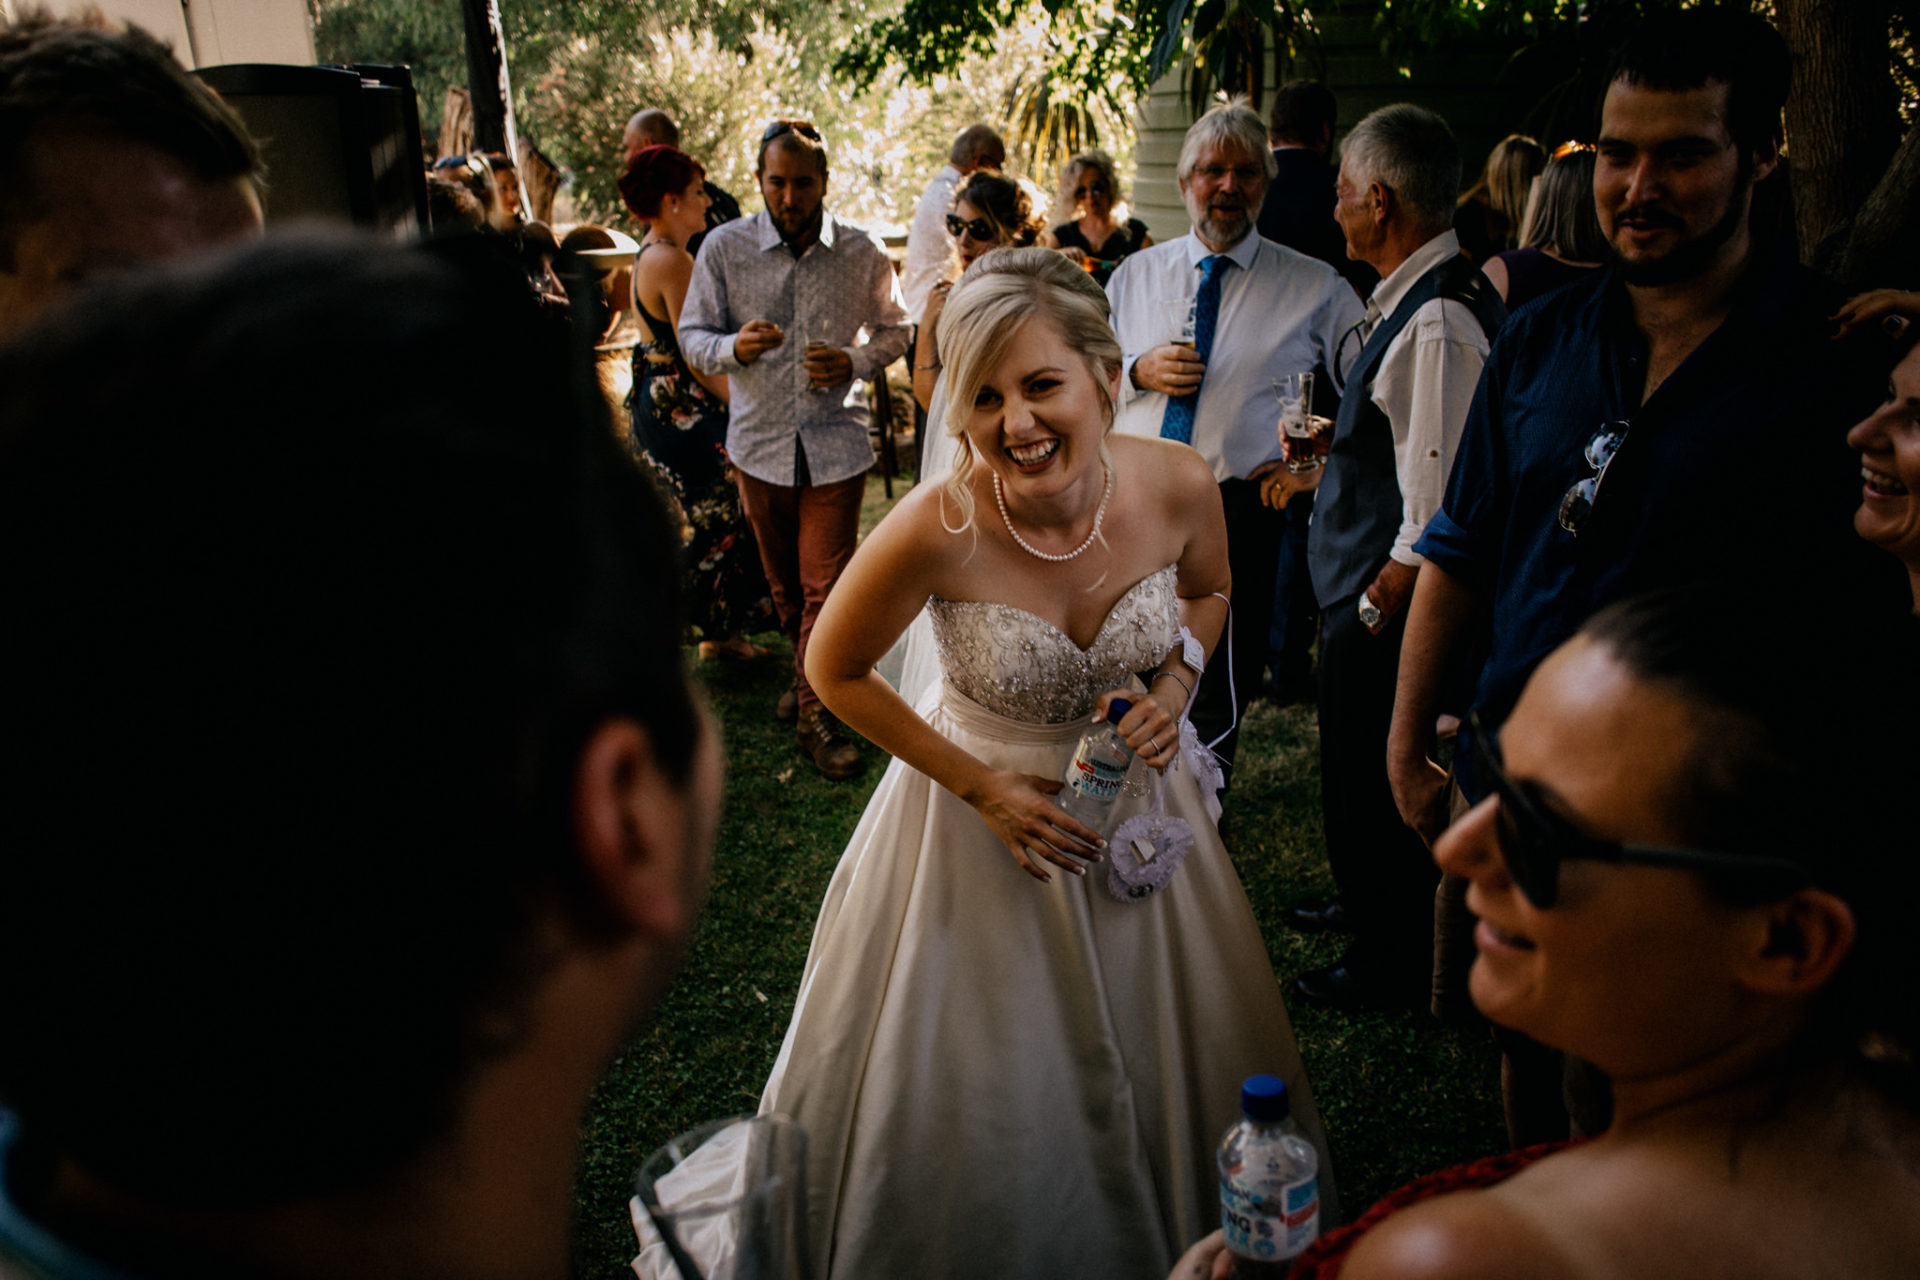 backyard-wedding-australia-melbourne-bride-laughing-with-guests